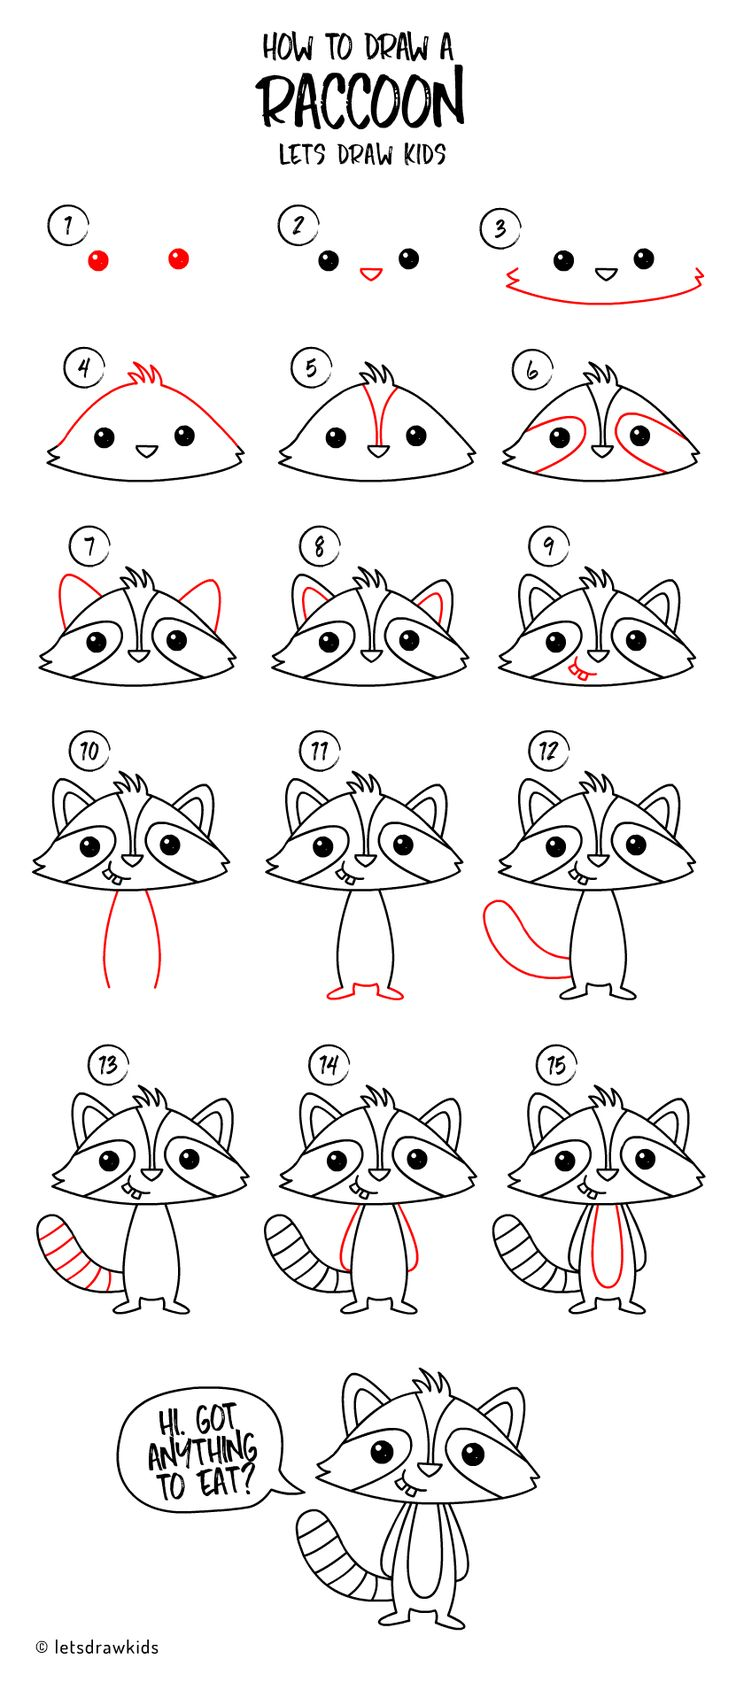 how to draw a raccoon easy drawing step by step perfect for kids - Cartoon Drawings Kids